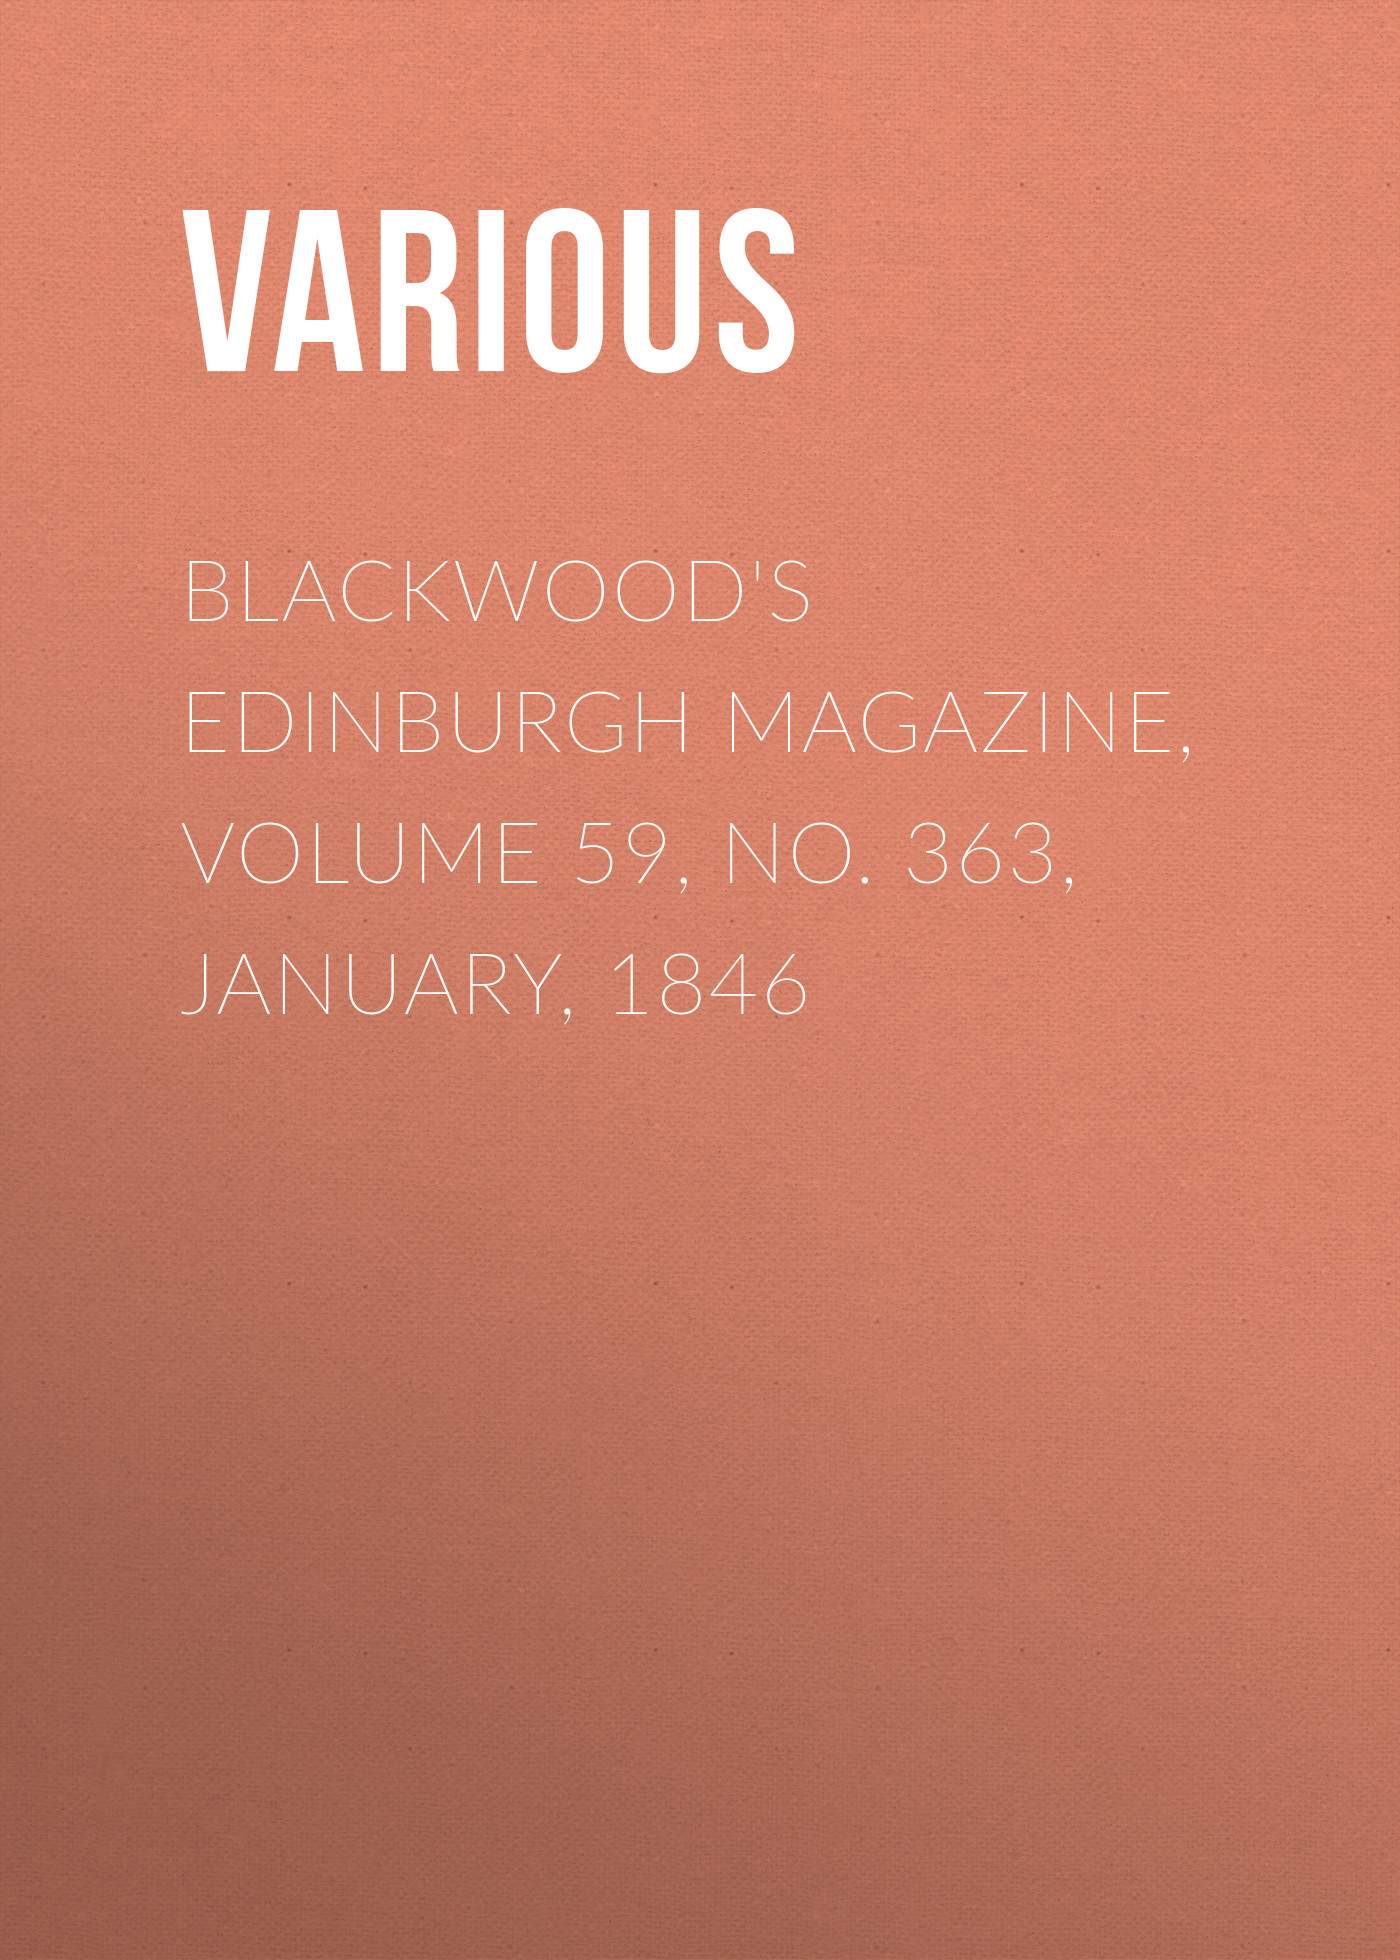 Various Blackwood's Edinburgh Magazine, Volume 59, No. 363, January, 1846 цена